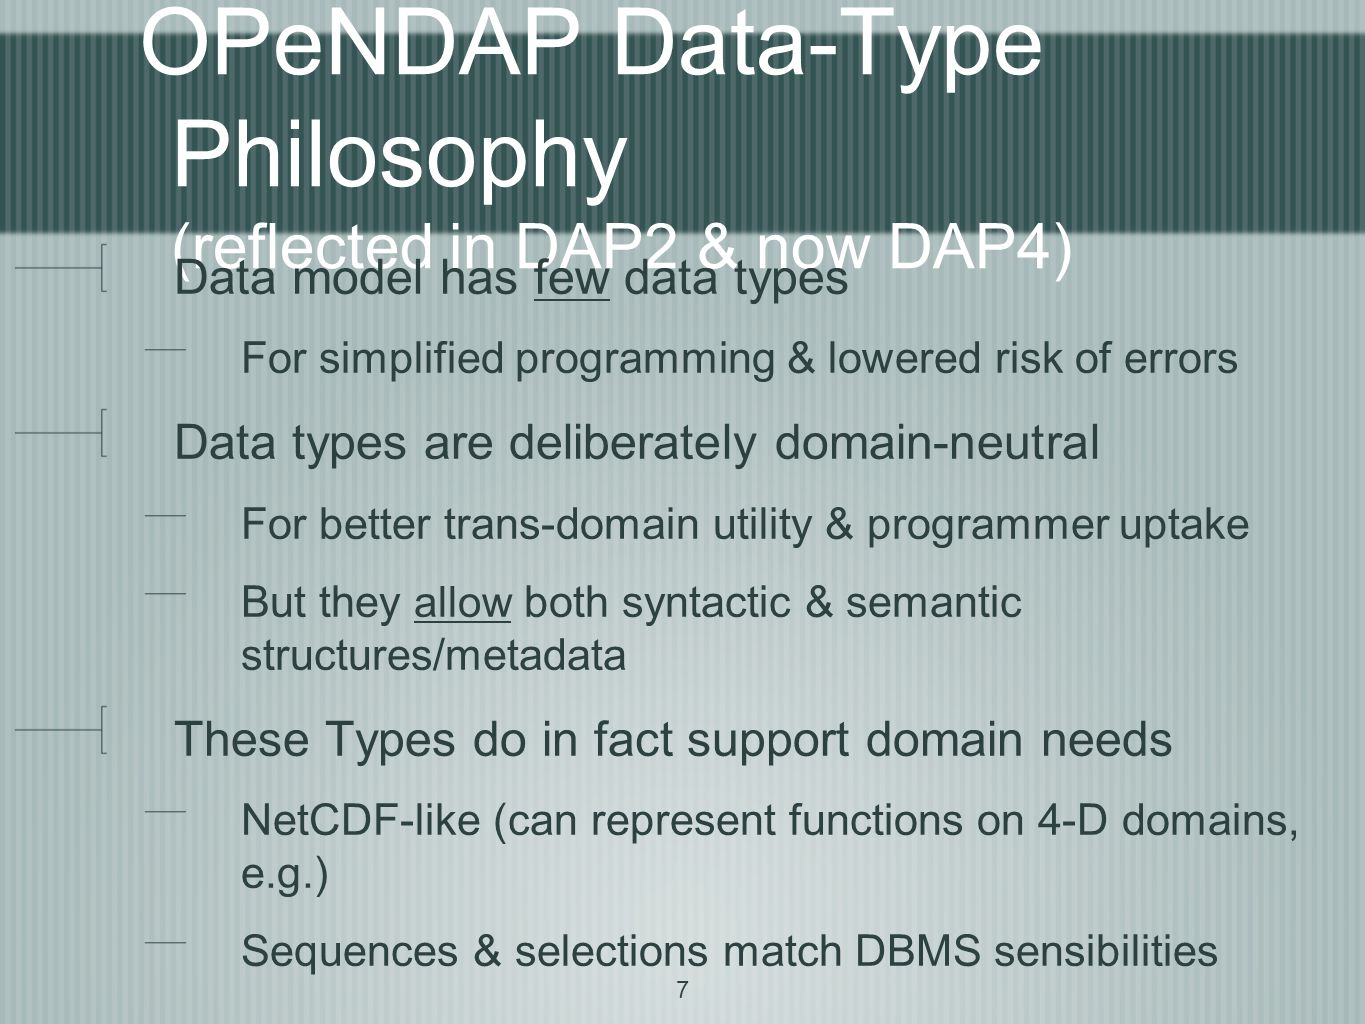 7 OPeNDAP Data-Type Philosophy (reflected in DAP2 & now DAP4) Data model has few data types For simplified programming & lowered risk of errors Data types are deliberately domain-neutral For better trans-domain utility & programmer uptake But they allow both syntactic & semantic structures/metadata These Types do in fact support domain needs NetCDF-like (can represent functions on 4-D domains, e.g.) Sequences & selections match DBMS sensibilities